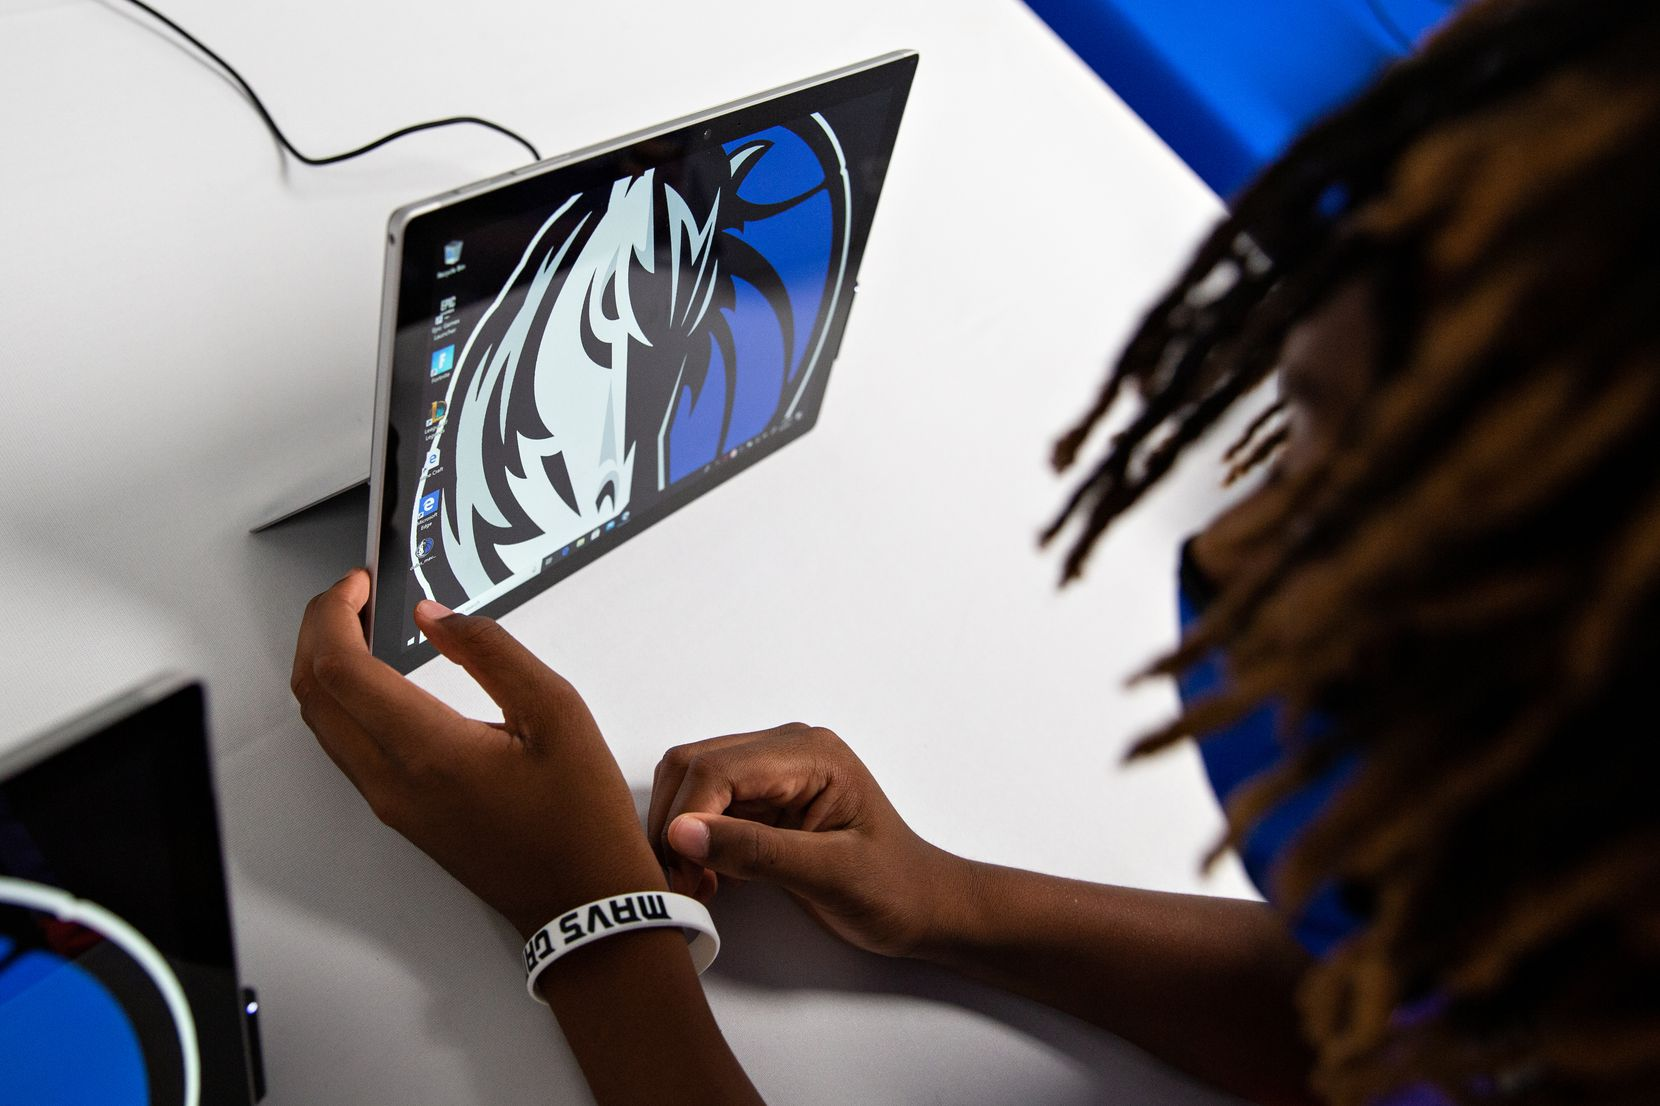 Sam Patterson, 11, sees what there is to explore on the iPads available to youth at the Mavs Foundation's unveiling of its newest reading and learning center renovation at the Moorland YMCA at Oak Cliff on August 3, 2021. Shelby Tauber / Special Contributor)